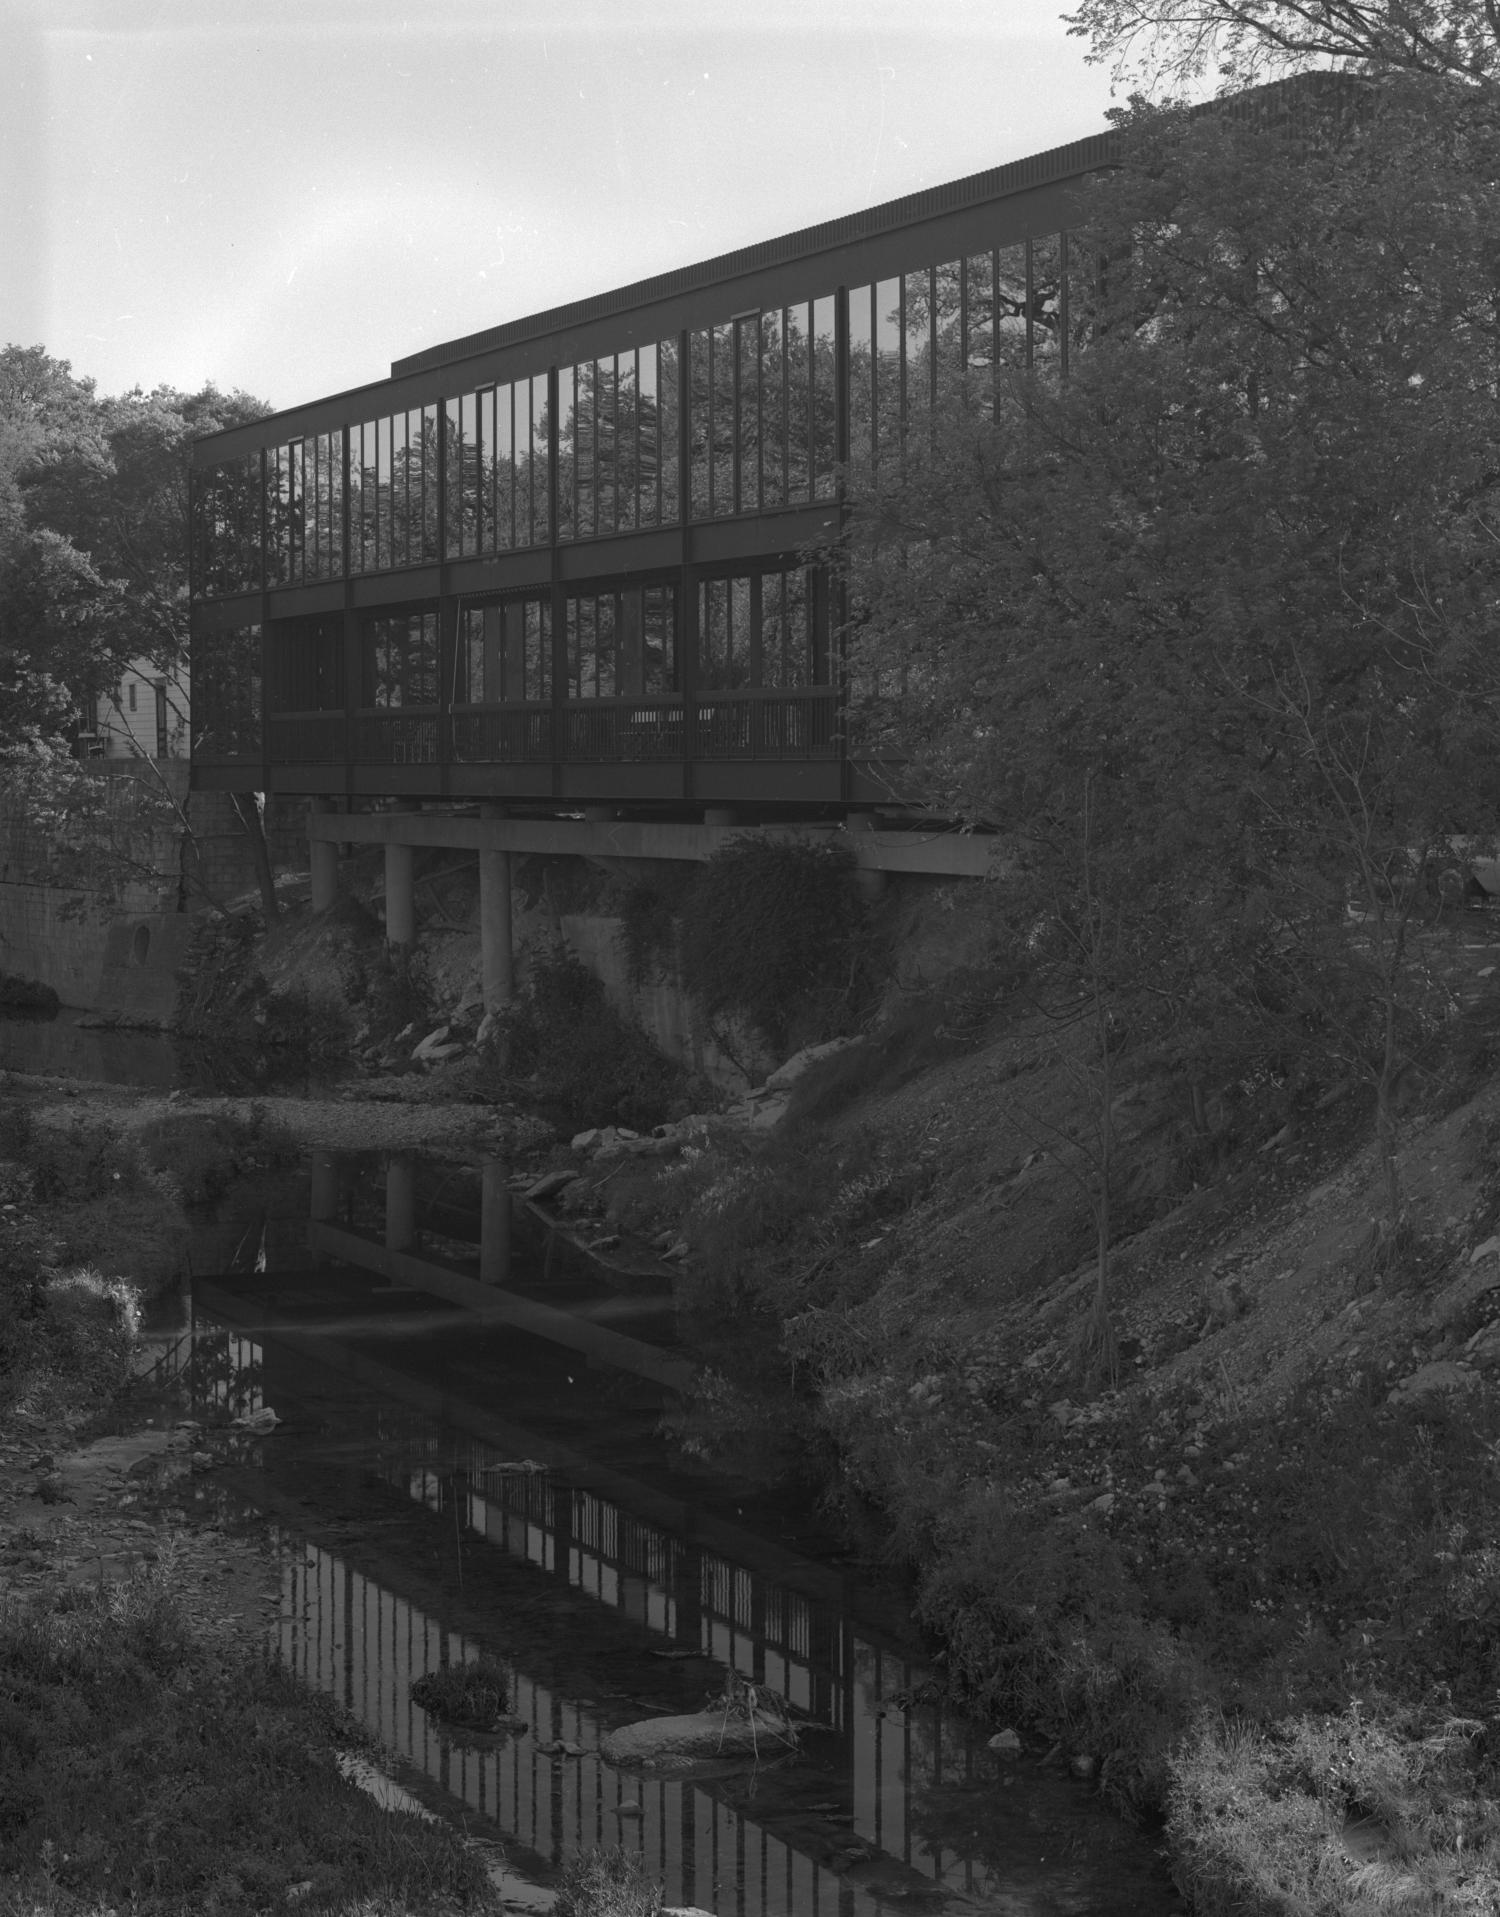 [Mirrored Building], Photograph of a dark, mirrored, postmodern building poised on a ledge. The windows are highly reflective and a balcony can be seen overlooking a creek to the left. Trees and other foliage can be seen throughout the area and a light colored building can be partially seen in the background to the left.,